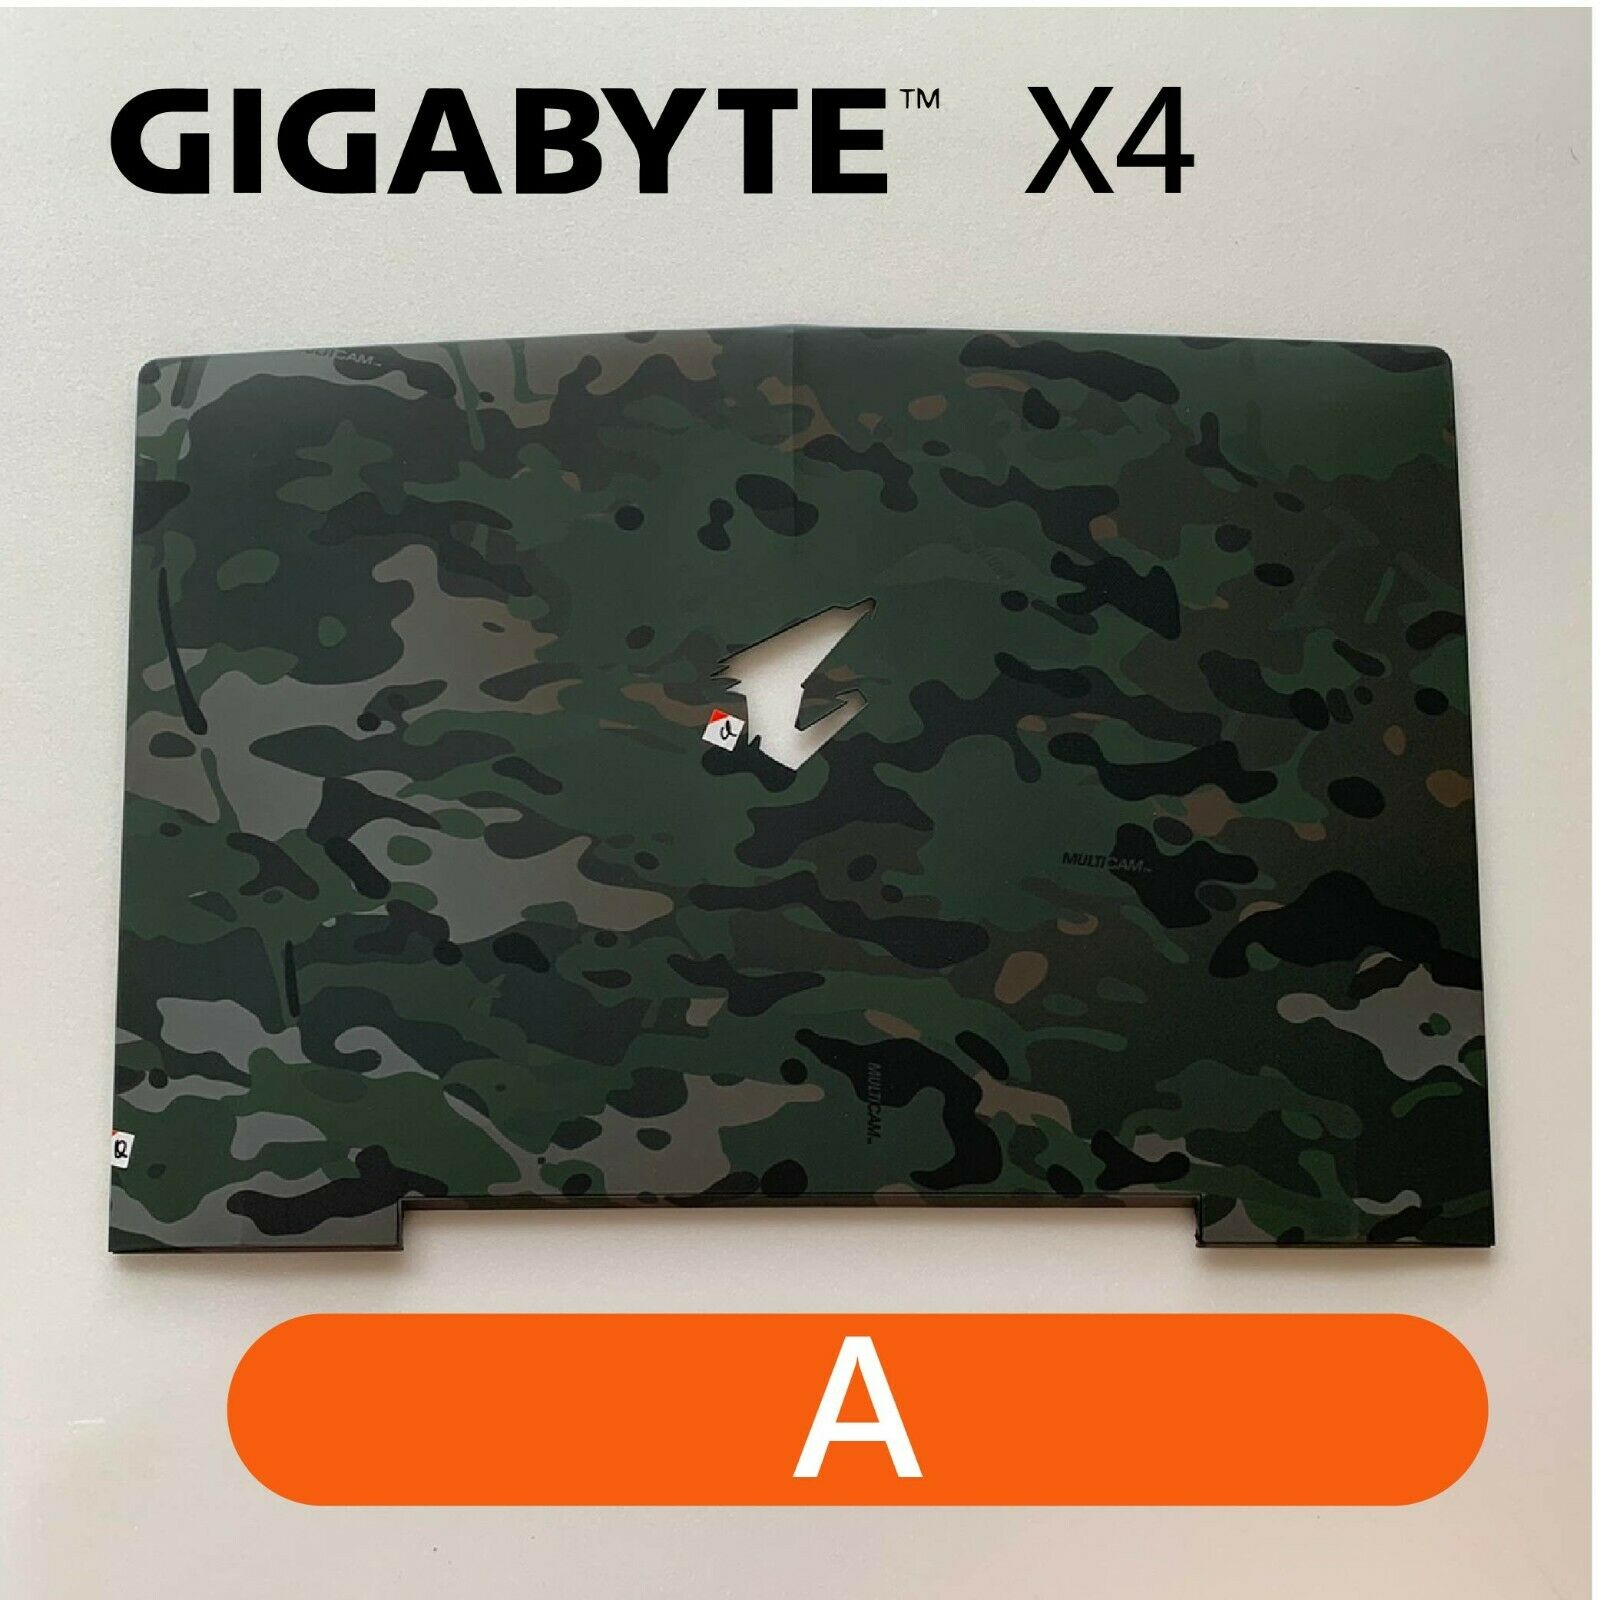 【2p3c】Replacement for GIGABYTE X4 Laptop LCD Cover : A(Rear Top Lid Back Cover)